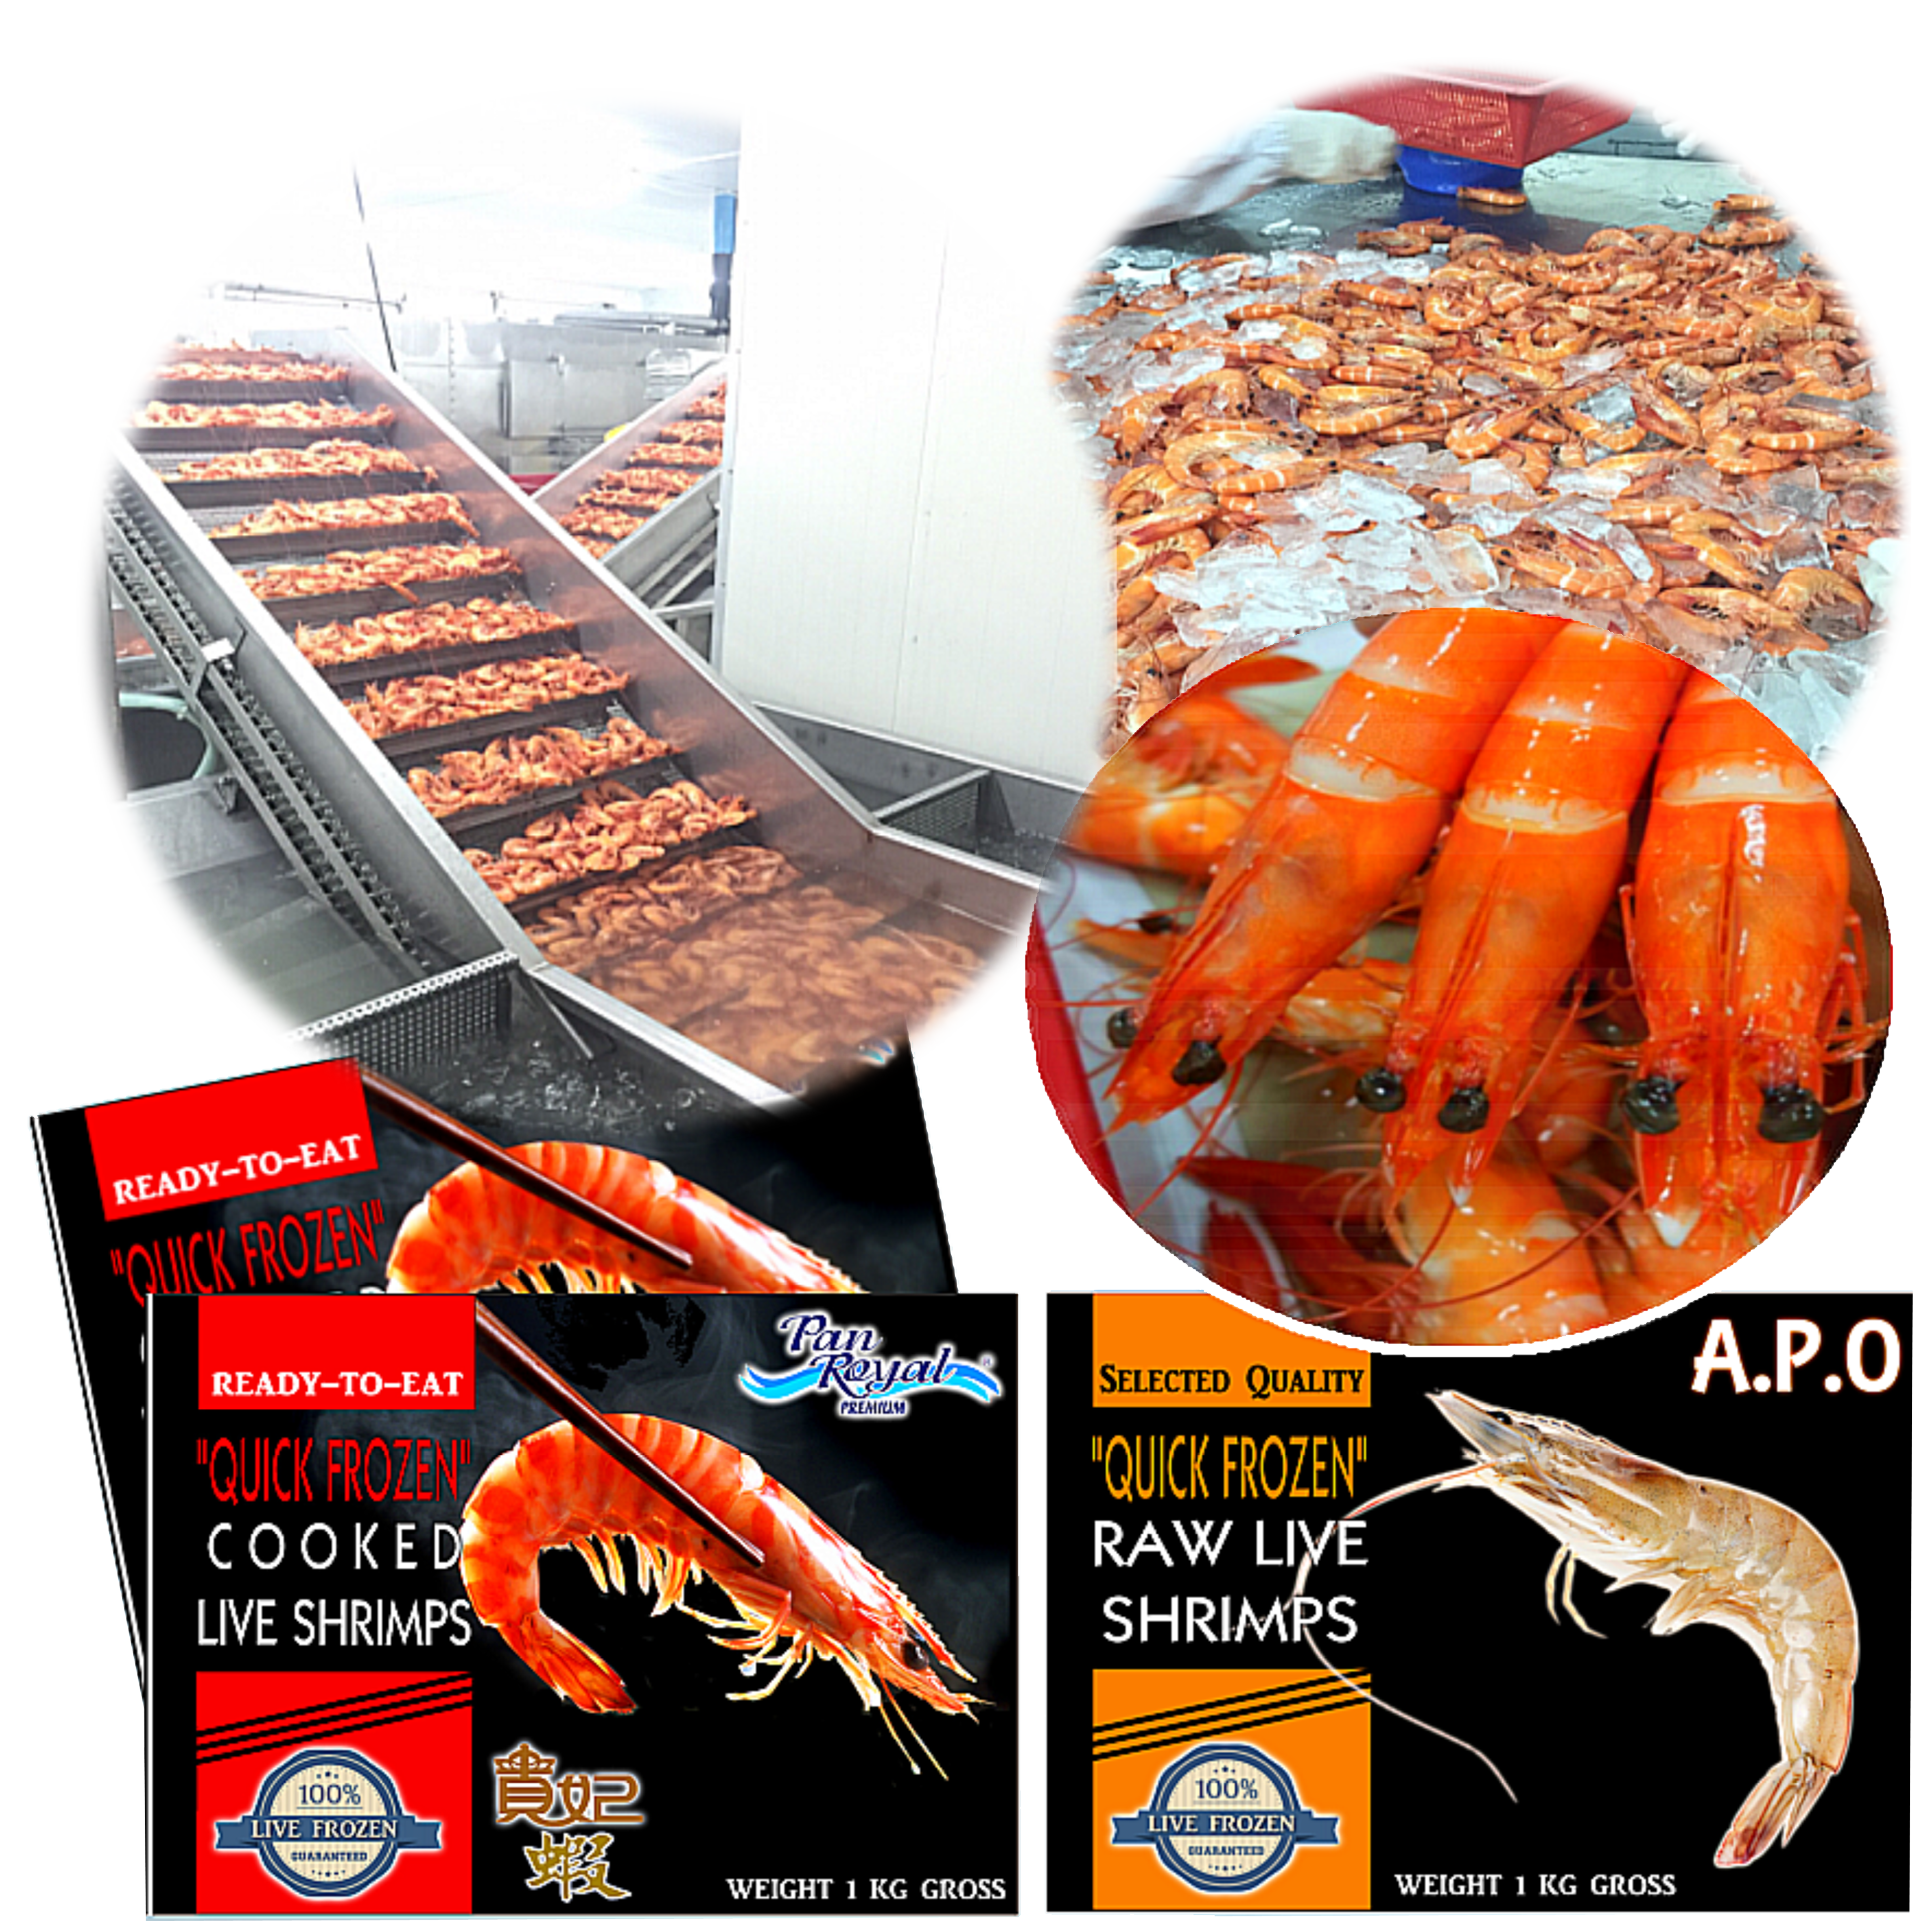 Pan Ocean Singapore Pte Ltd – Integrated Seafood Processing Company